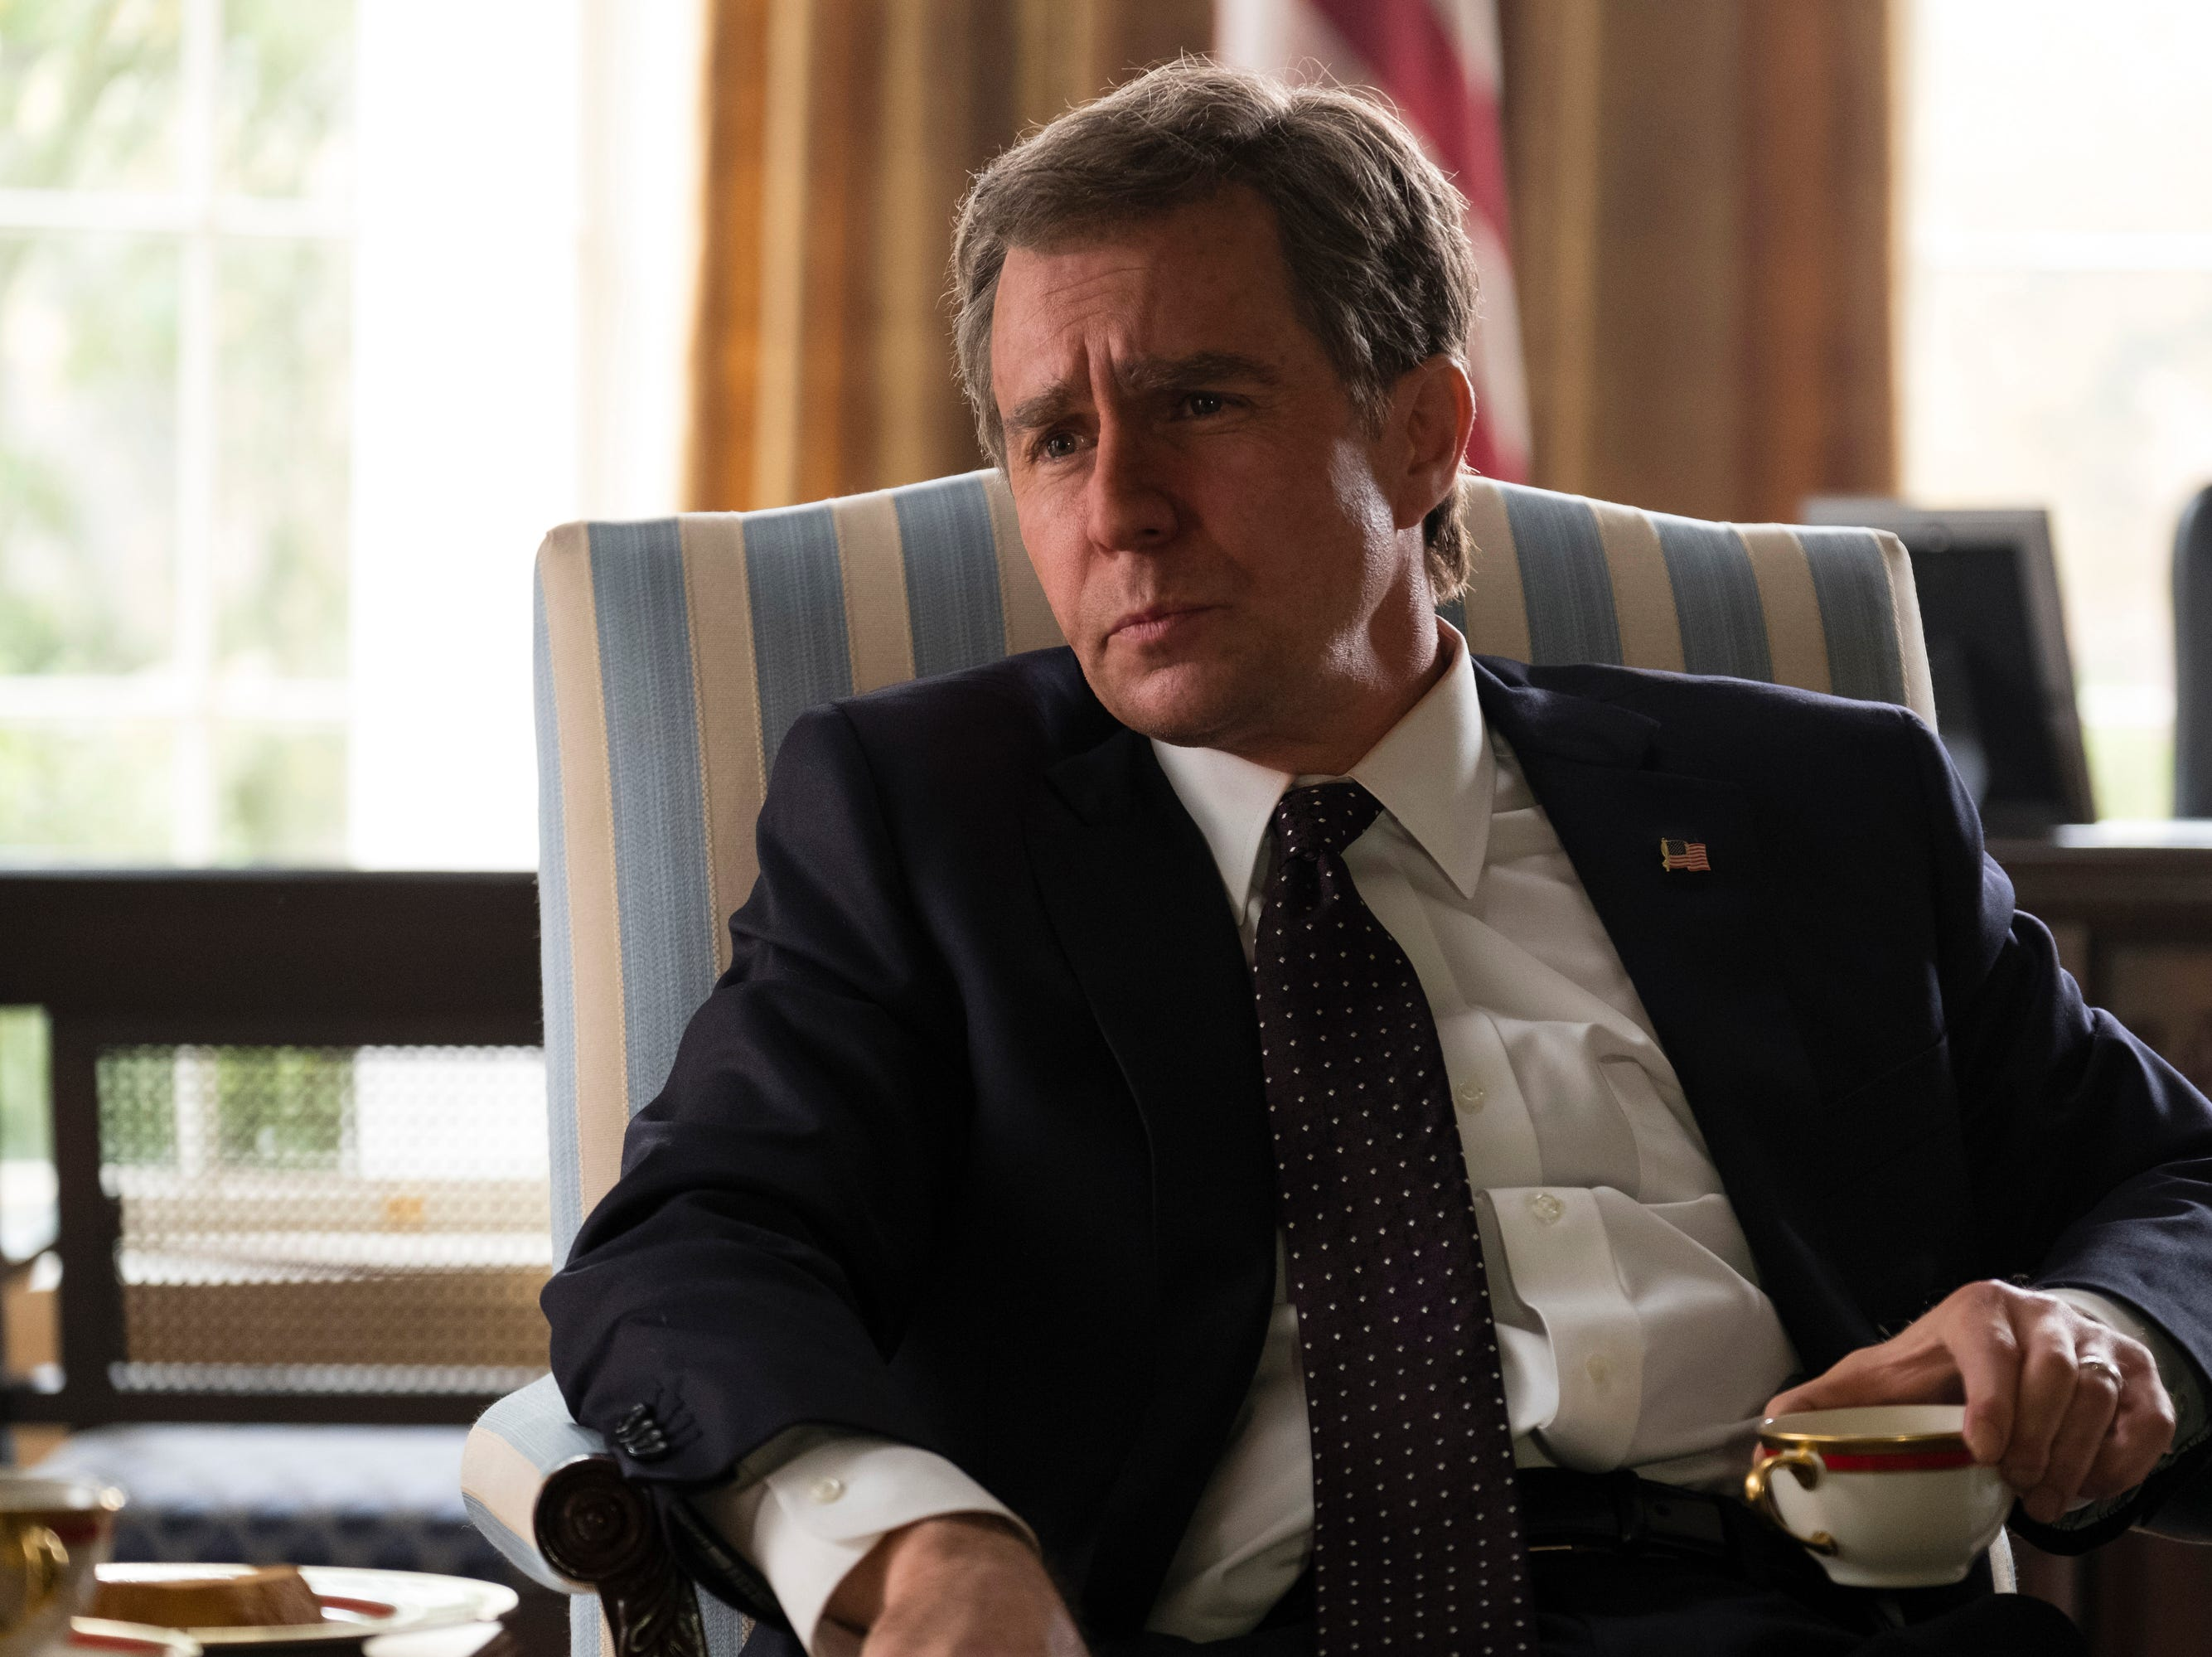 Sam Rockwell stars as George W. Bush in Adam McKayÕs VICE, an Annapurna Pictures release.